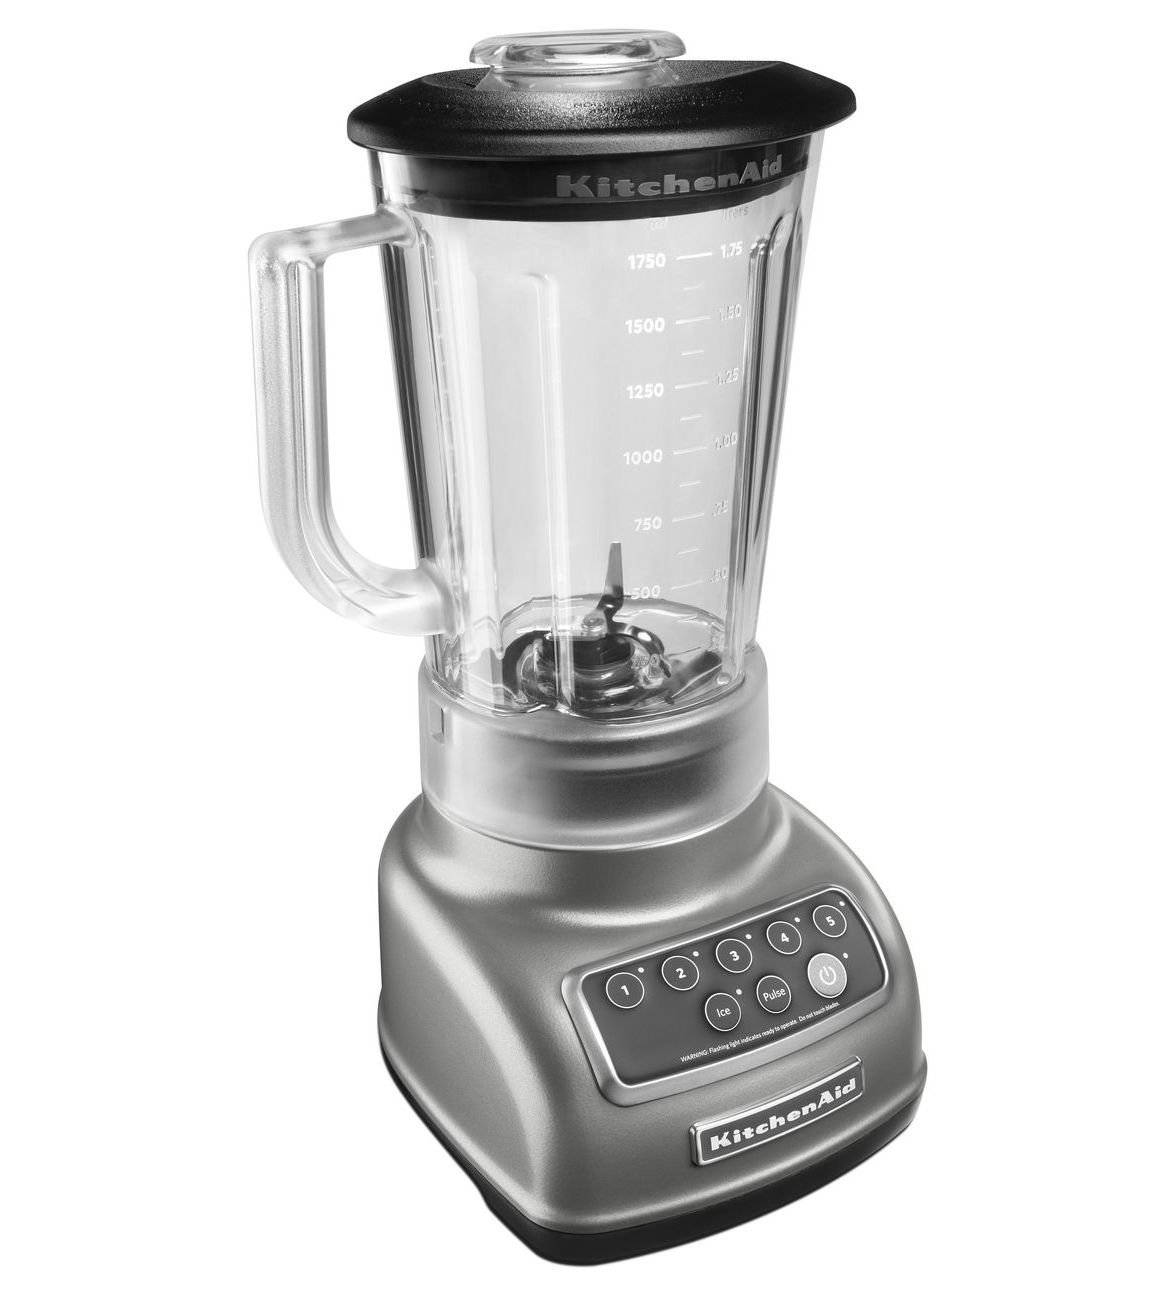 KitchenAid KSB1570 5-Speed Stand Blender, White Kitchen Aid KSB1570WH